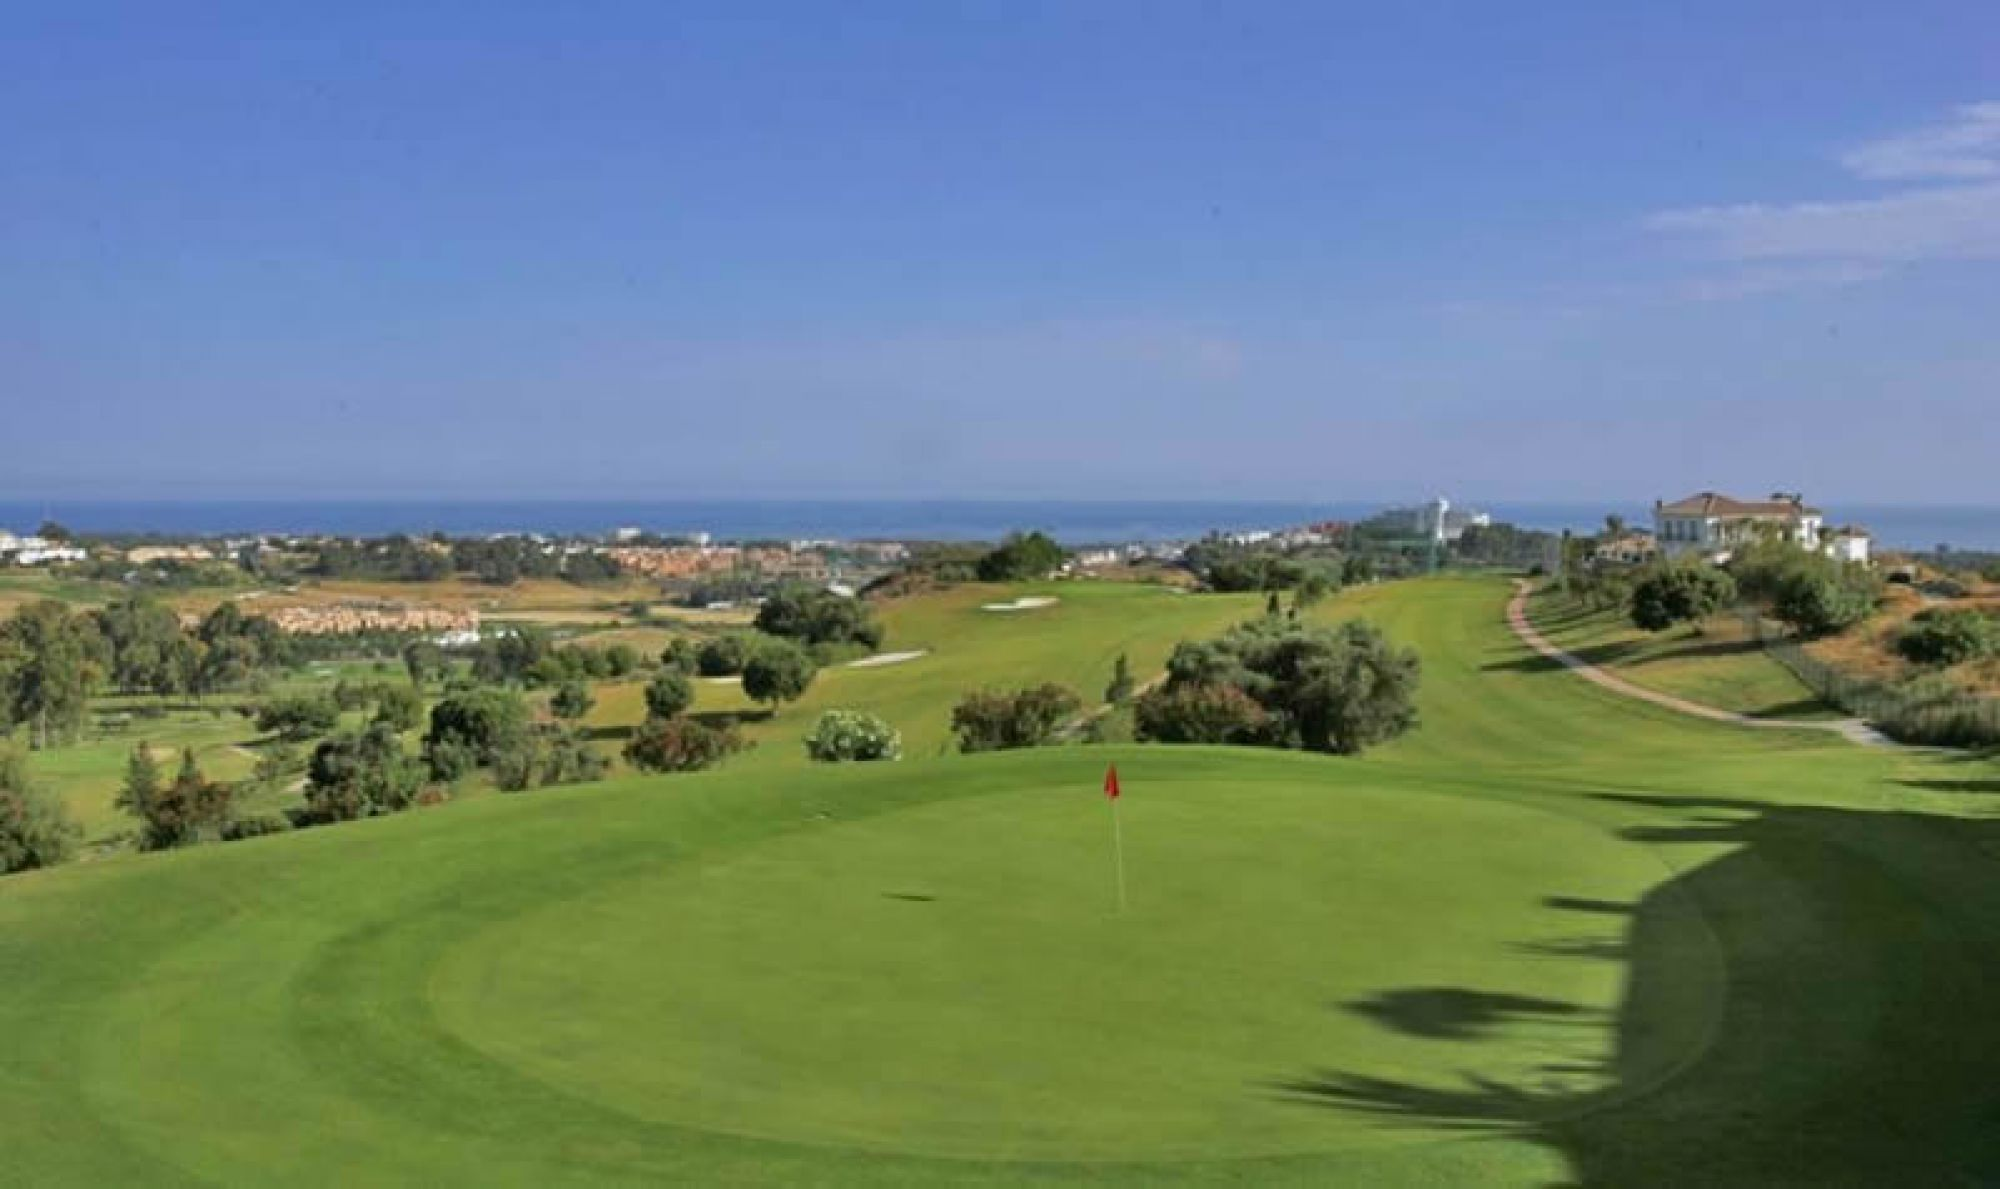 Atalaya New Course hosts several of the most excellent golf course near Costa Del Sol